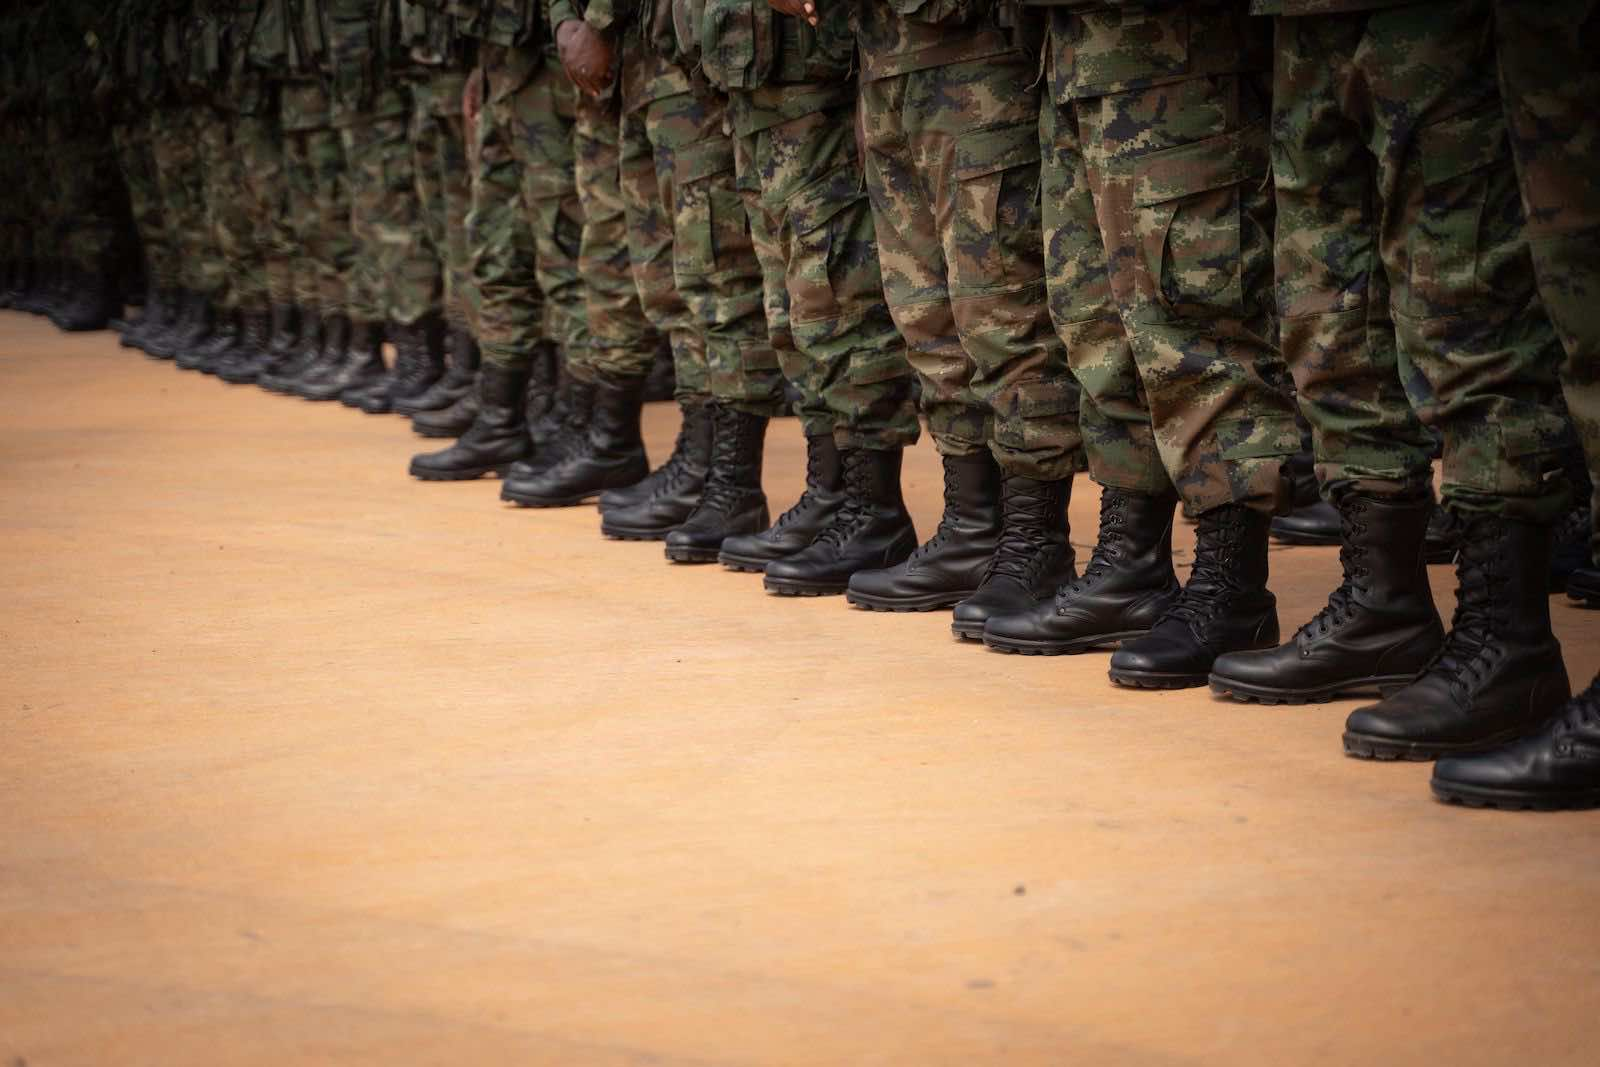 Rwandan soldiers and police prepare to deploy to Mozambique from Kigali airport on 10 July (Simon Wohlfahrt/AFP via Getty Images)